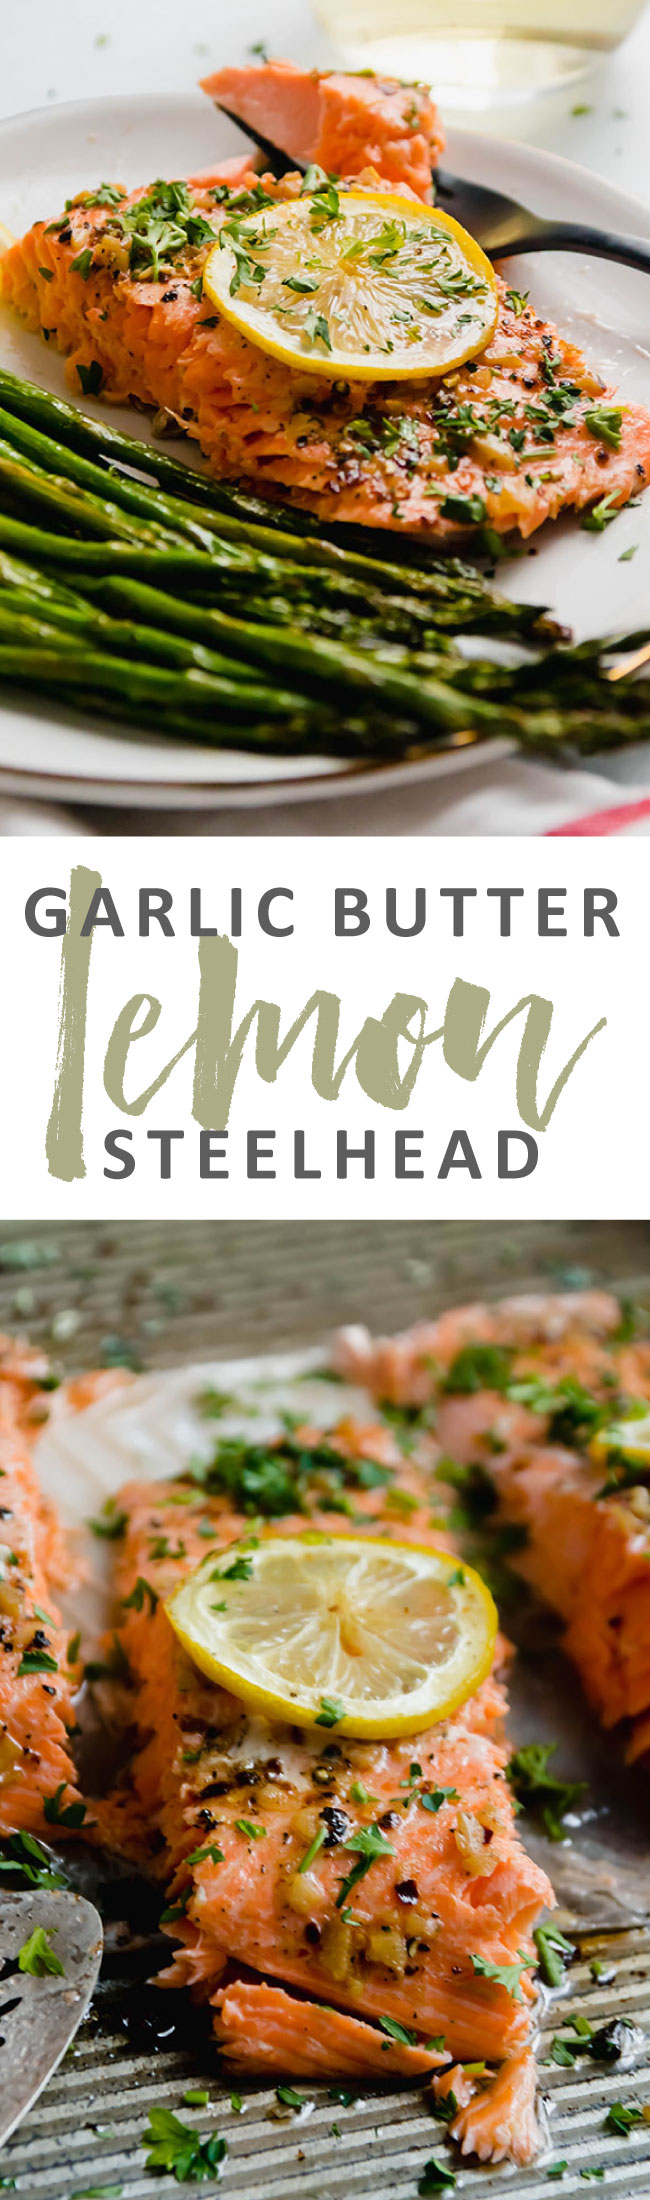 "graphic with two images of baked steelhead and text that reads ""garlic butter lemon steelhead"""